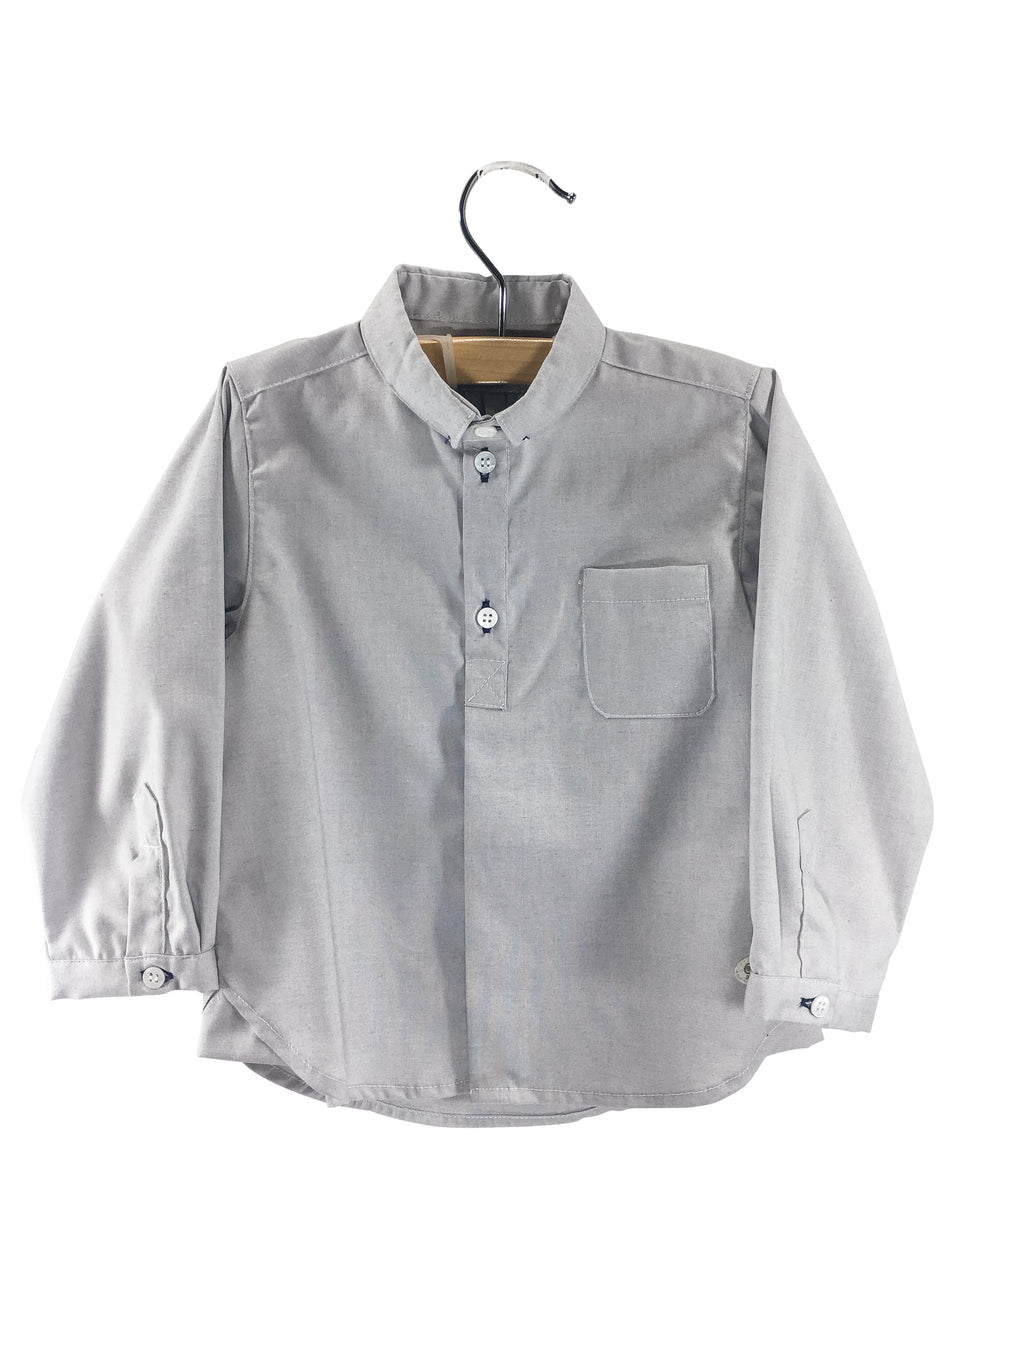 Boy Button Down Shirt Grey - Born Childrens Boutique